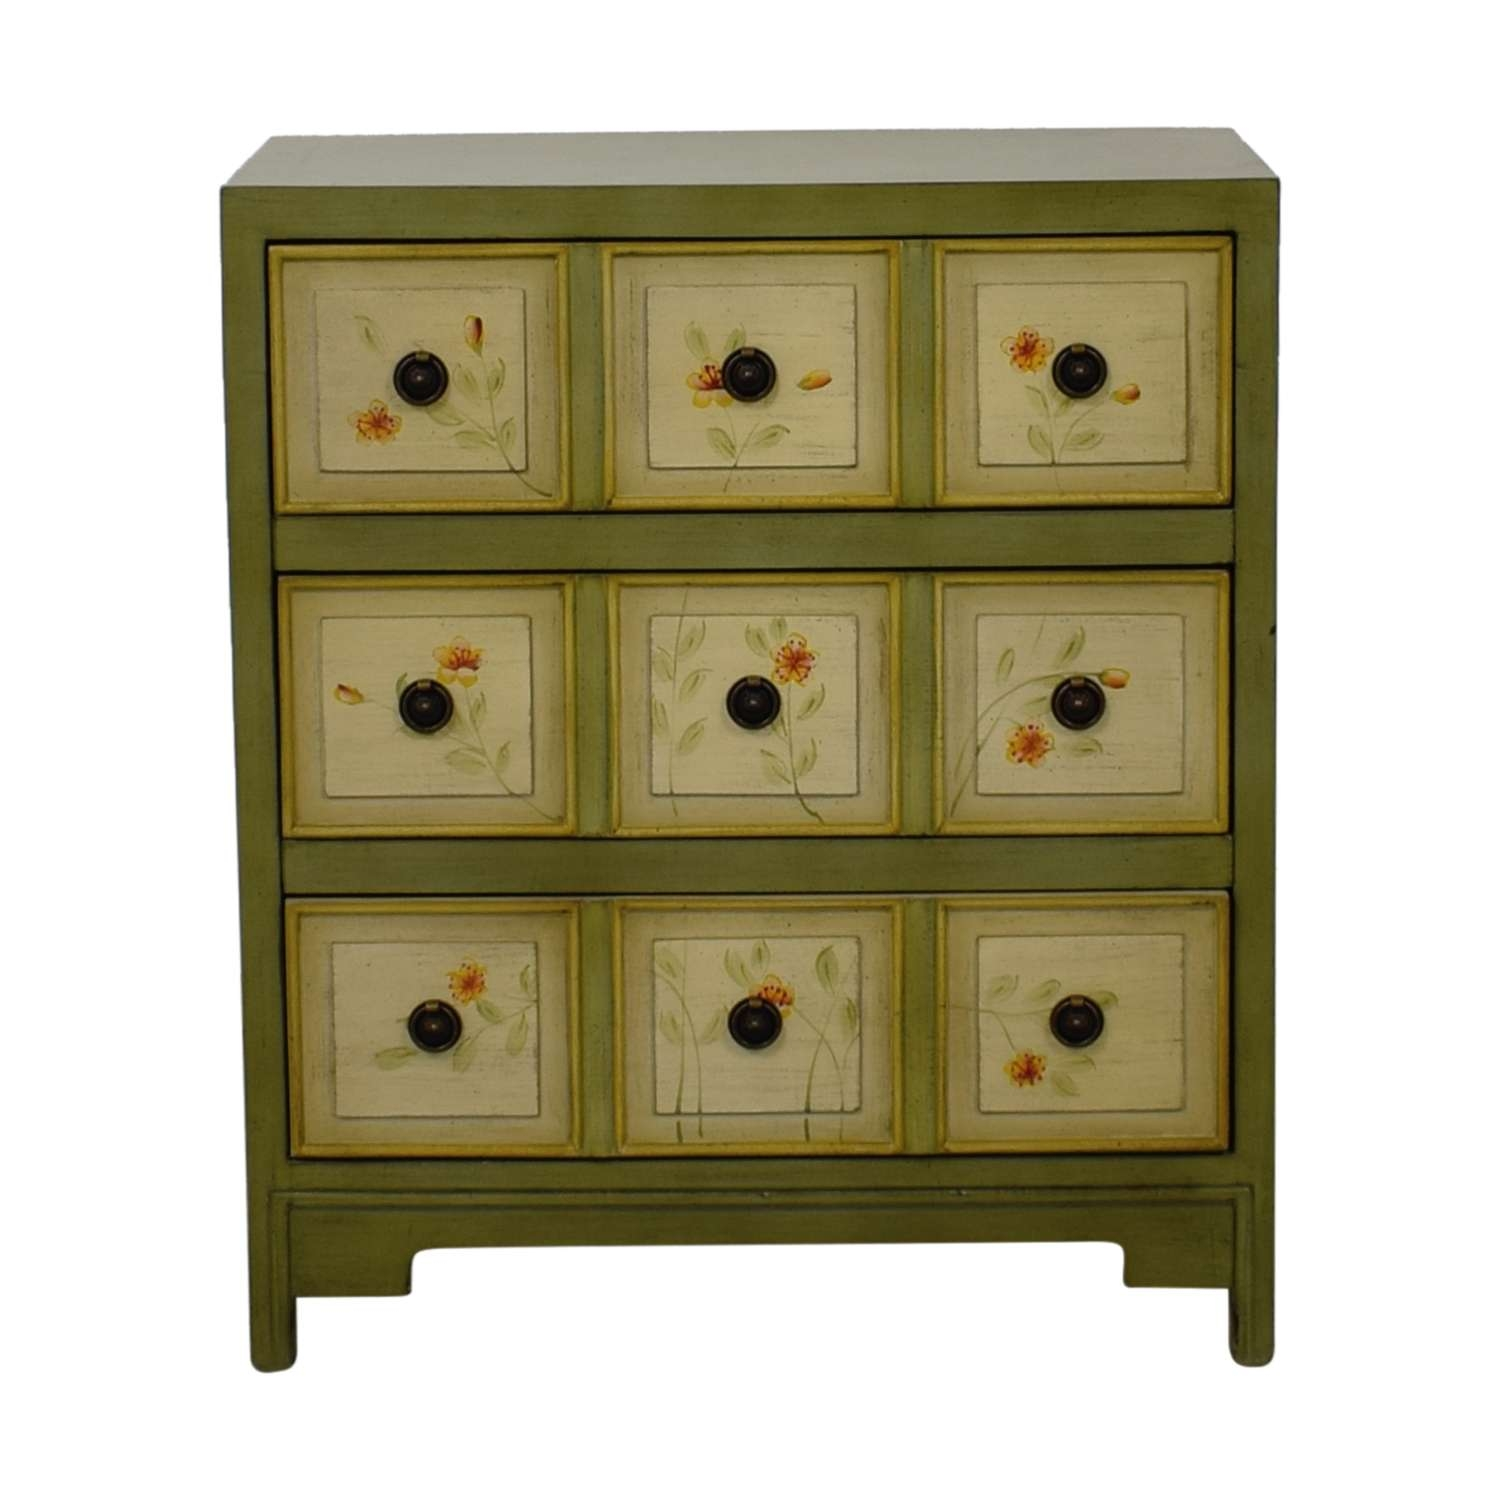 Cabinets & Sideboards: Used Cabinets & Sideboards For Sale With Regard To Second Hand Dressers And Sideboards (View 4 of 20)